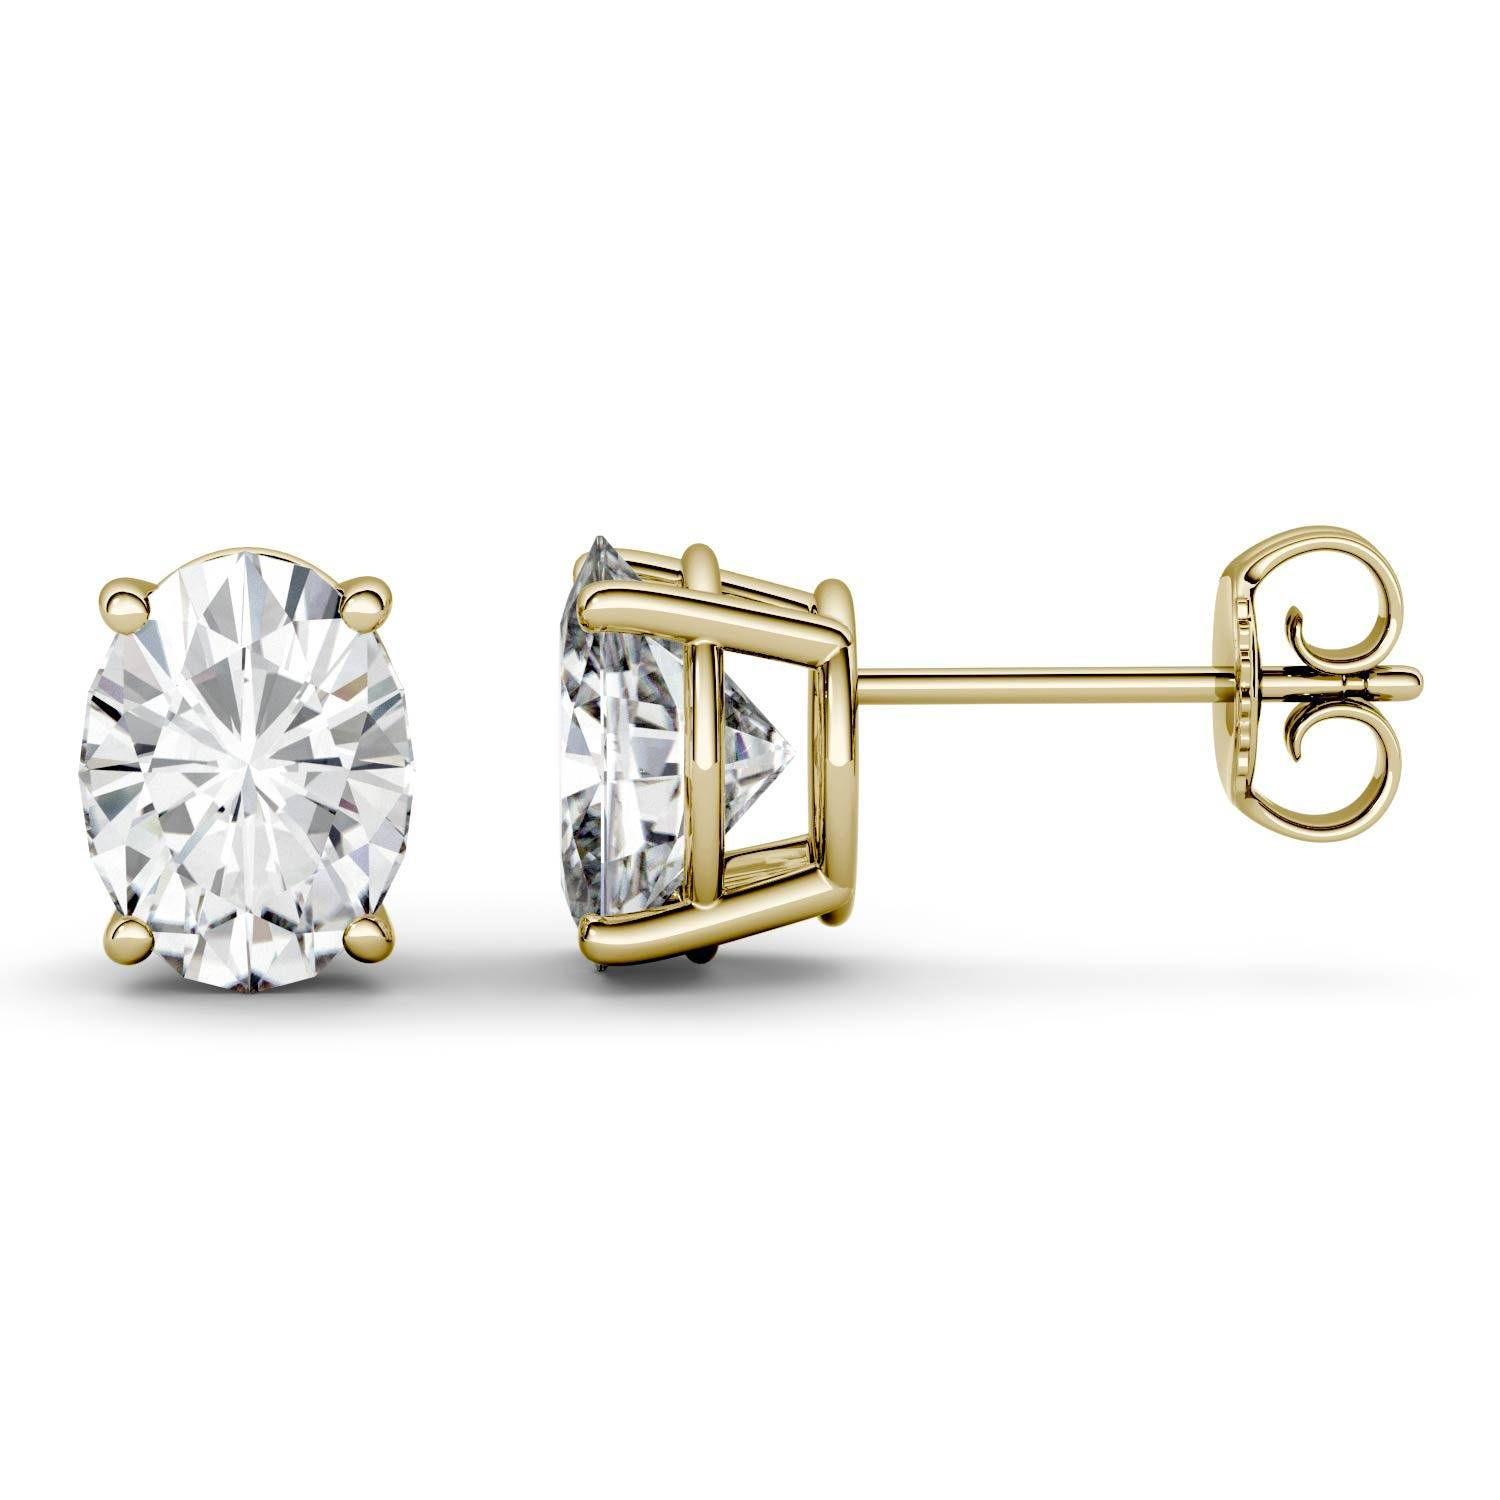 Charles & Colvard Four Prong Solitaire Stud Earring in 14K Yellow Gold, 3.00CTW Oval Forever One - Colorless Moissanite Charles & Colvard  - Yellow Gold - Size: One Size